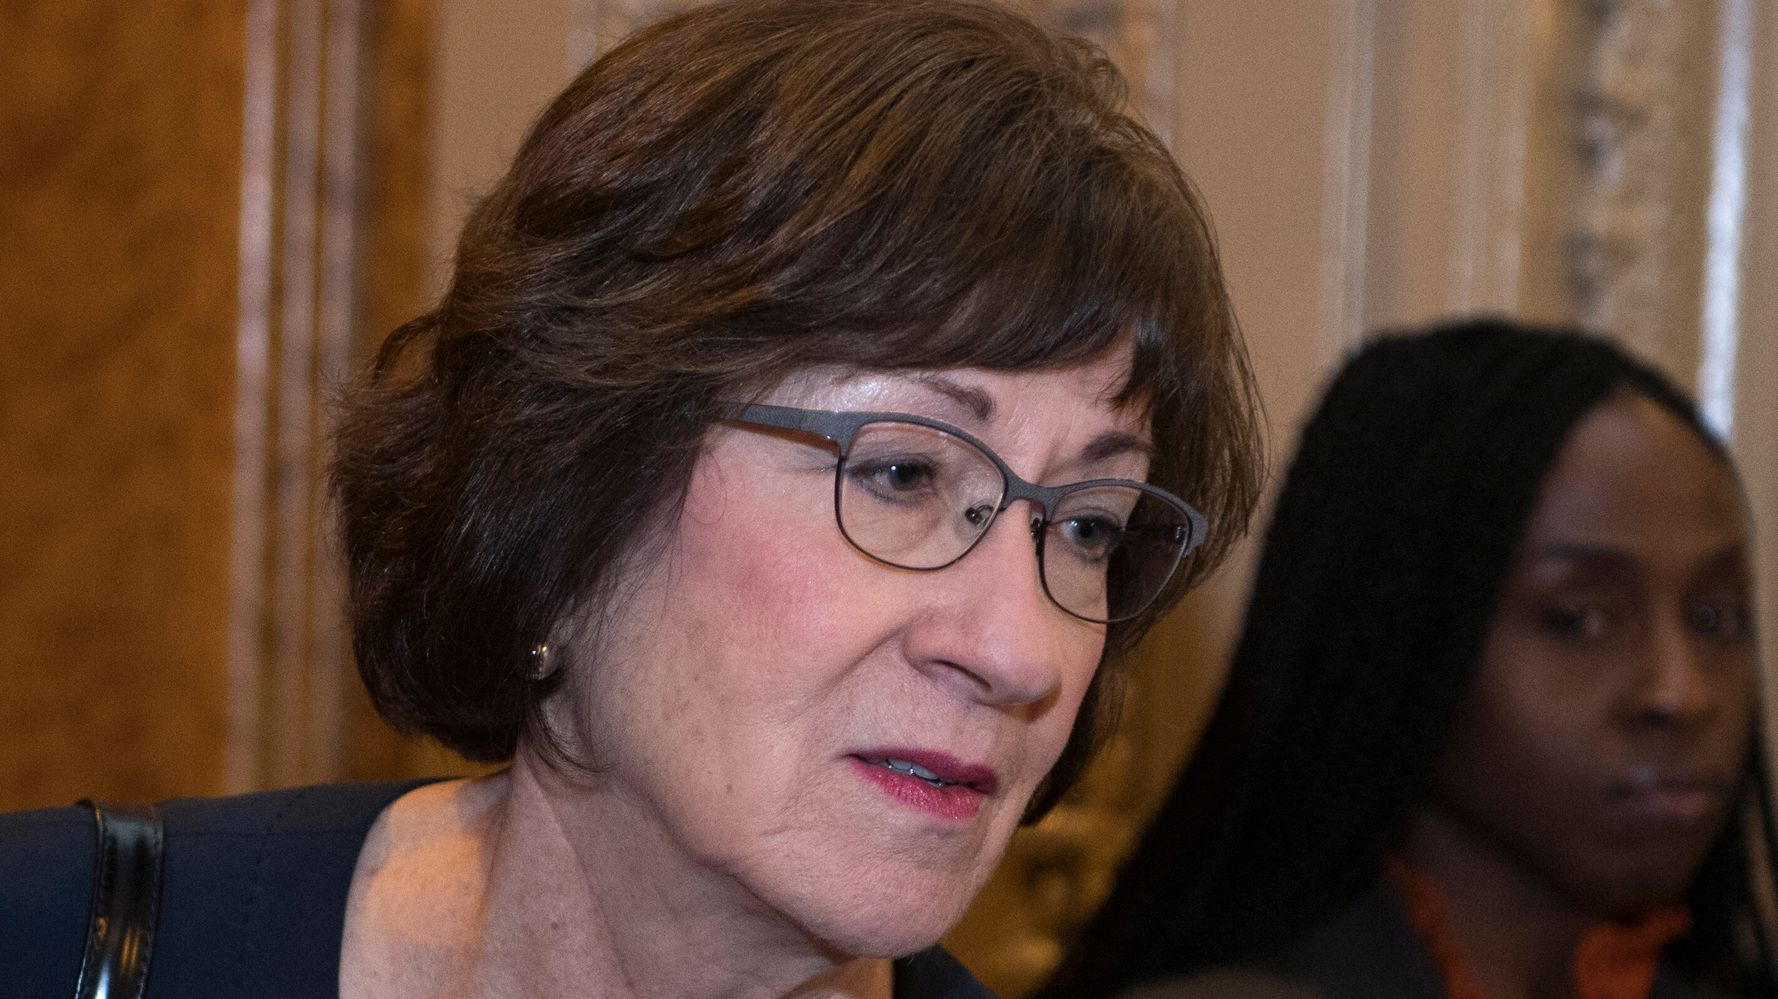 Westlake Legal Group 5d991e7621000053033199d0 Trump Urging China To Probe Biden 'Completely Inappropriate,' Says Susan Collins